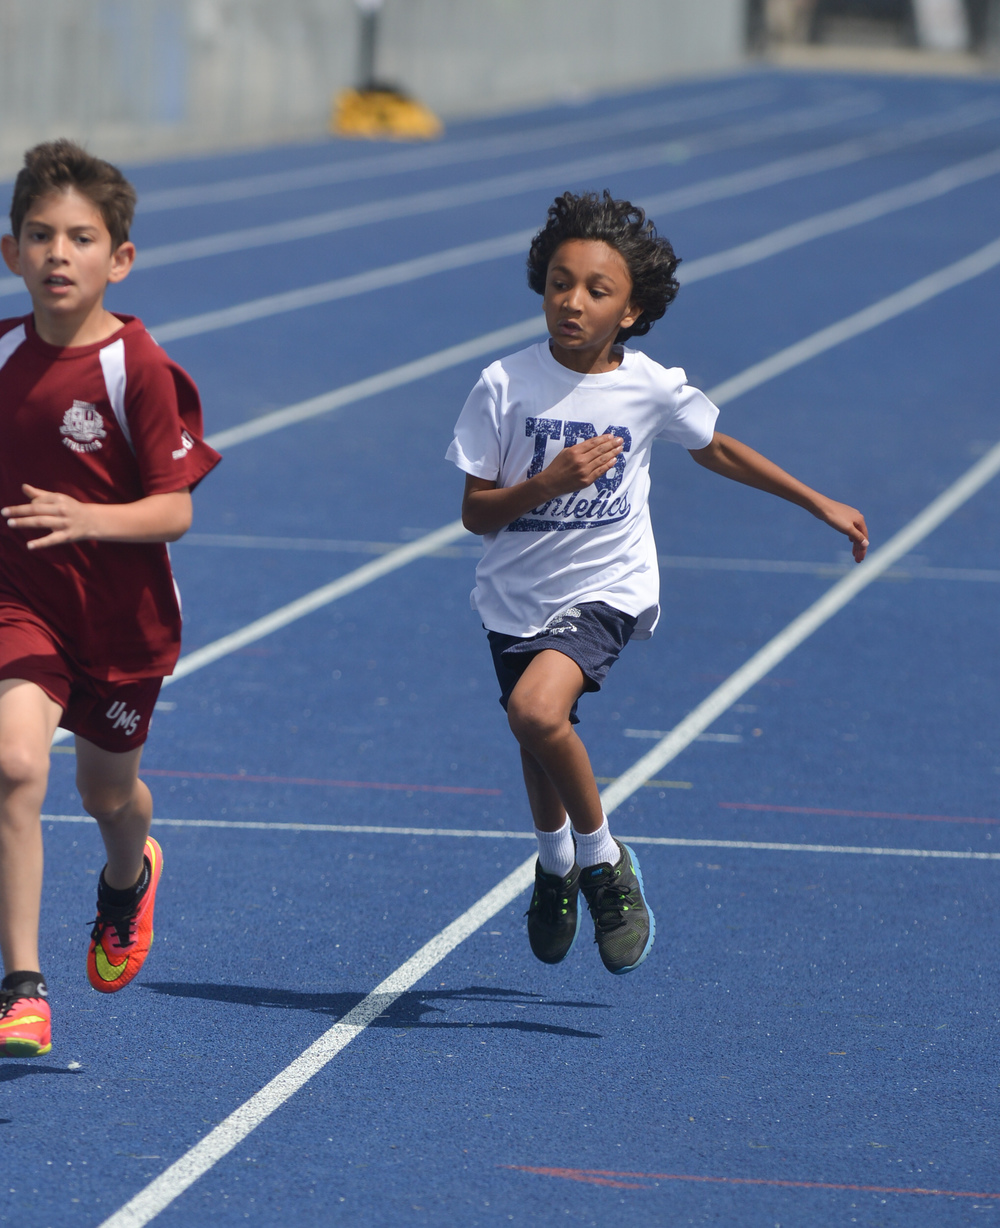 Track and FIeld - Ching 2015 - U10 (7 of 9).jpg